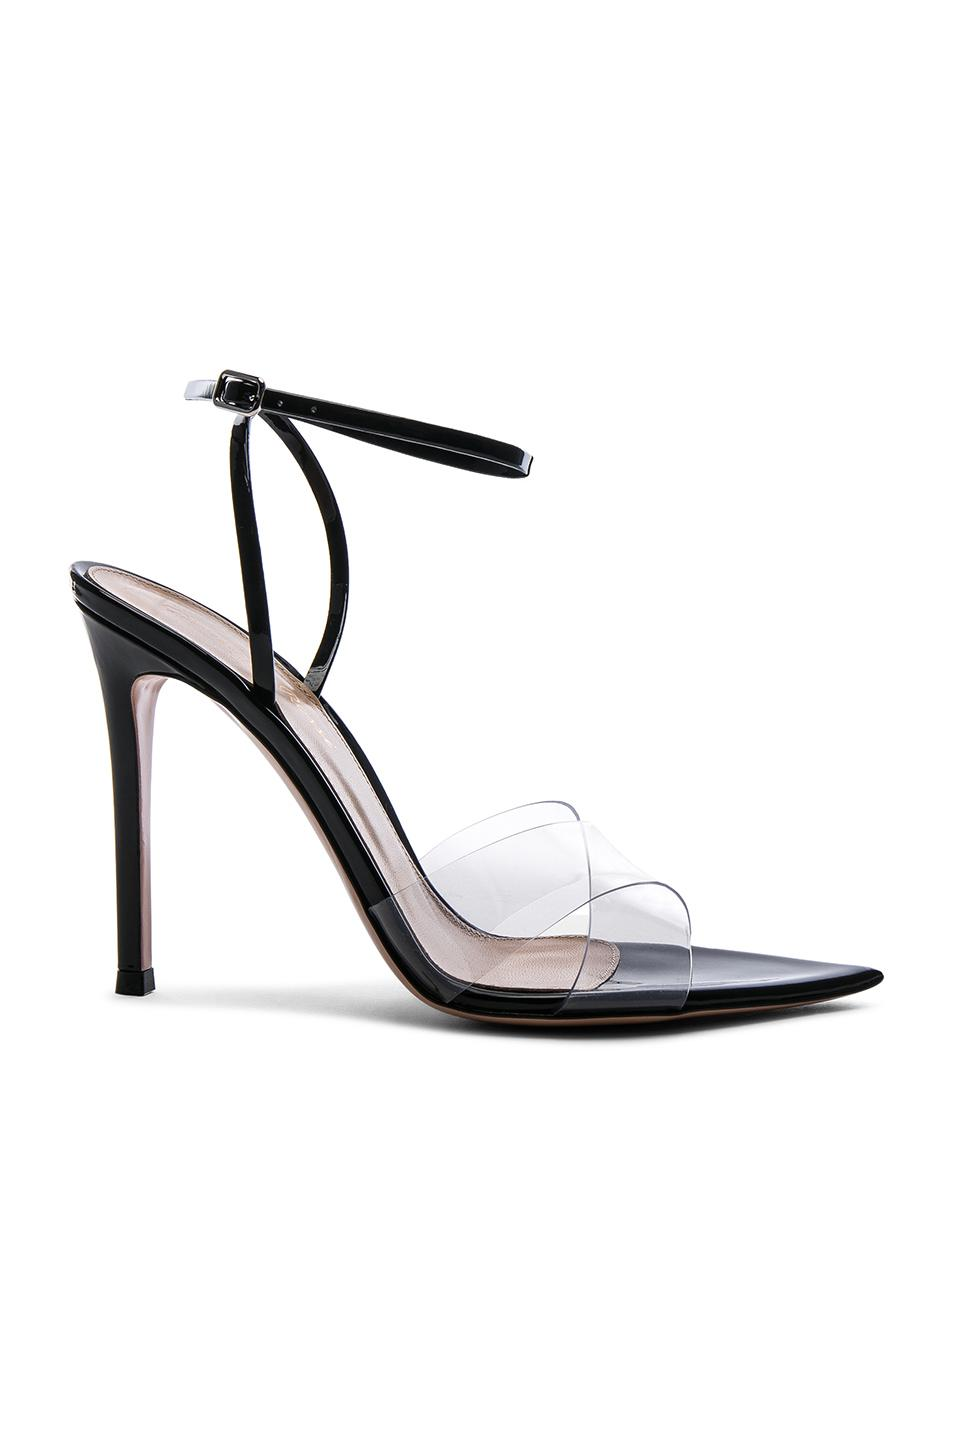 Gianvito Rossi Leather & Plexi Stark Ankle Strap Sandals in Neutrals. kwxXKYh3